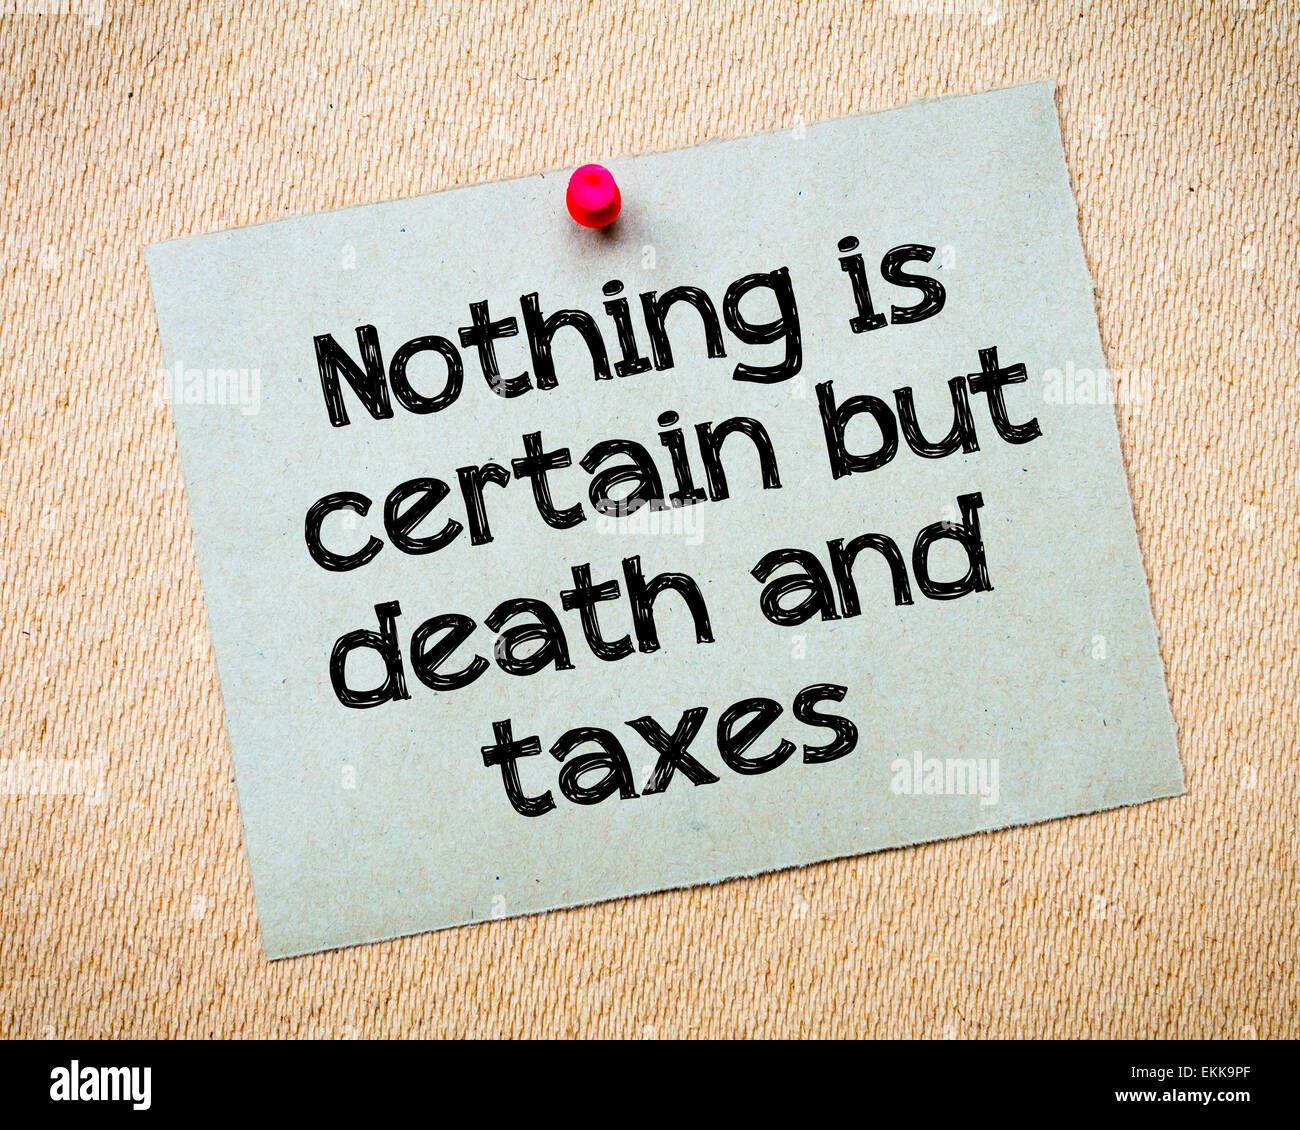 Who Said Death And Taxes Quote: Nothing Is Certain But Death And Taxes Message. Recycled